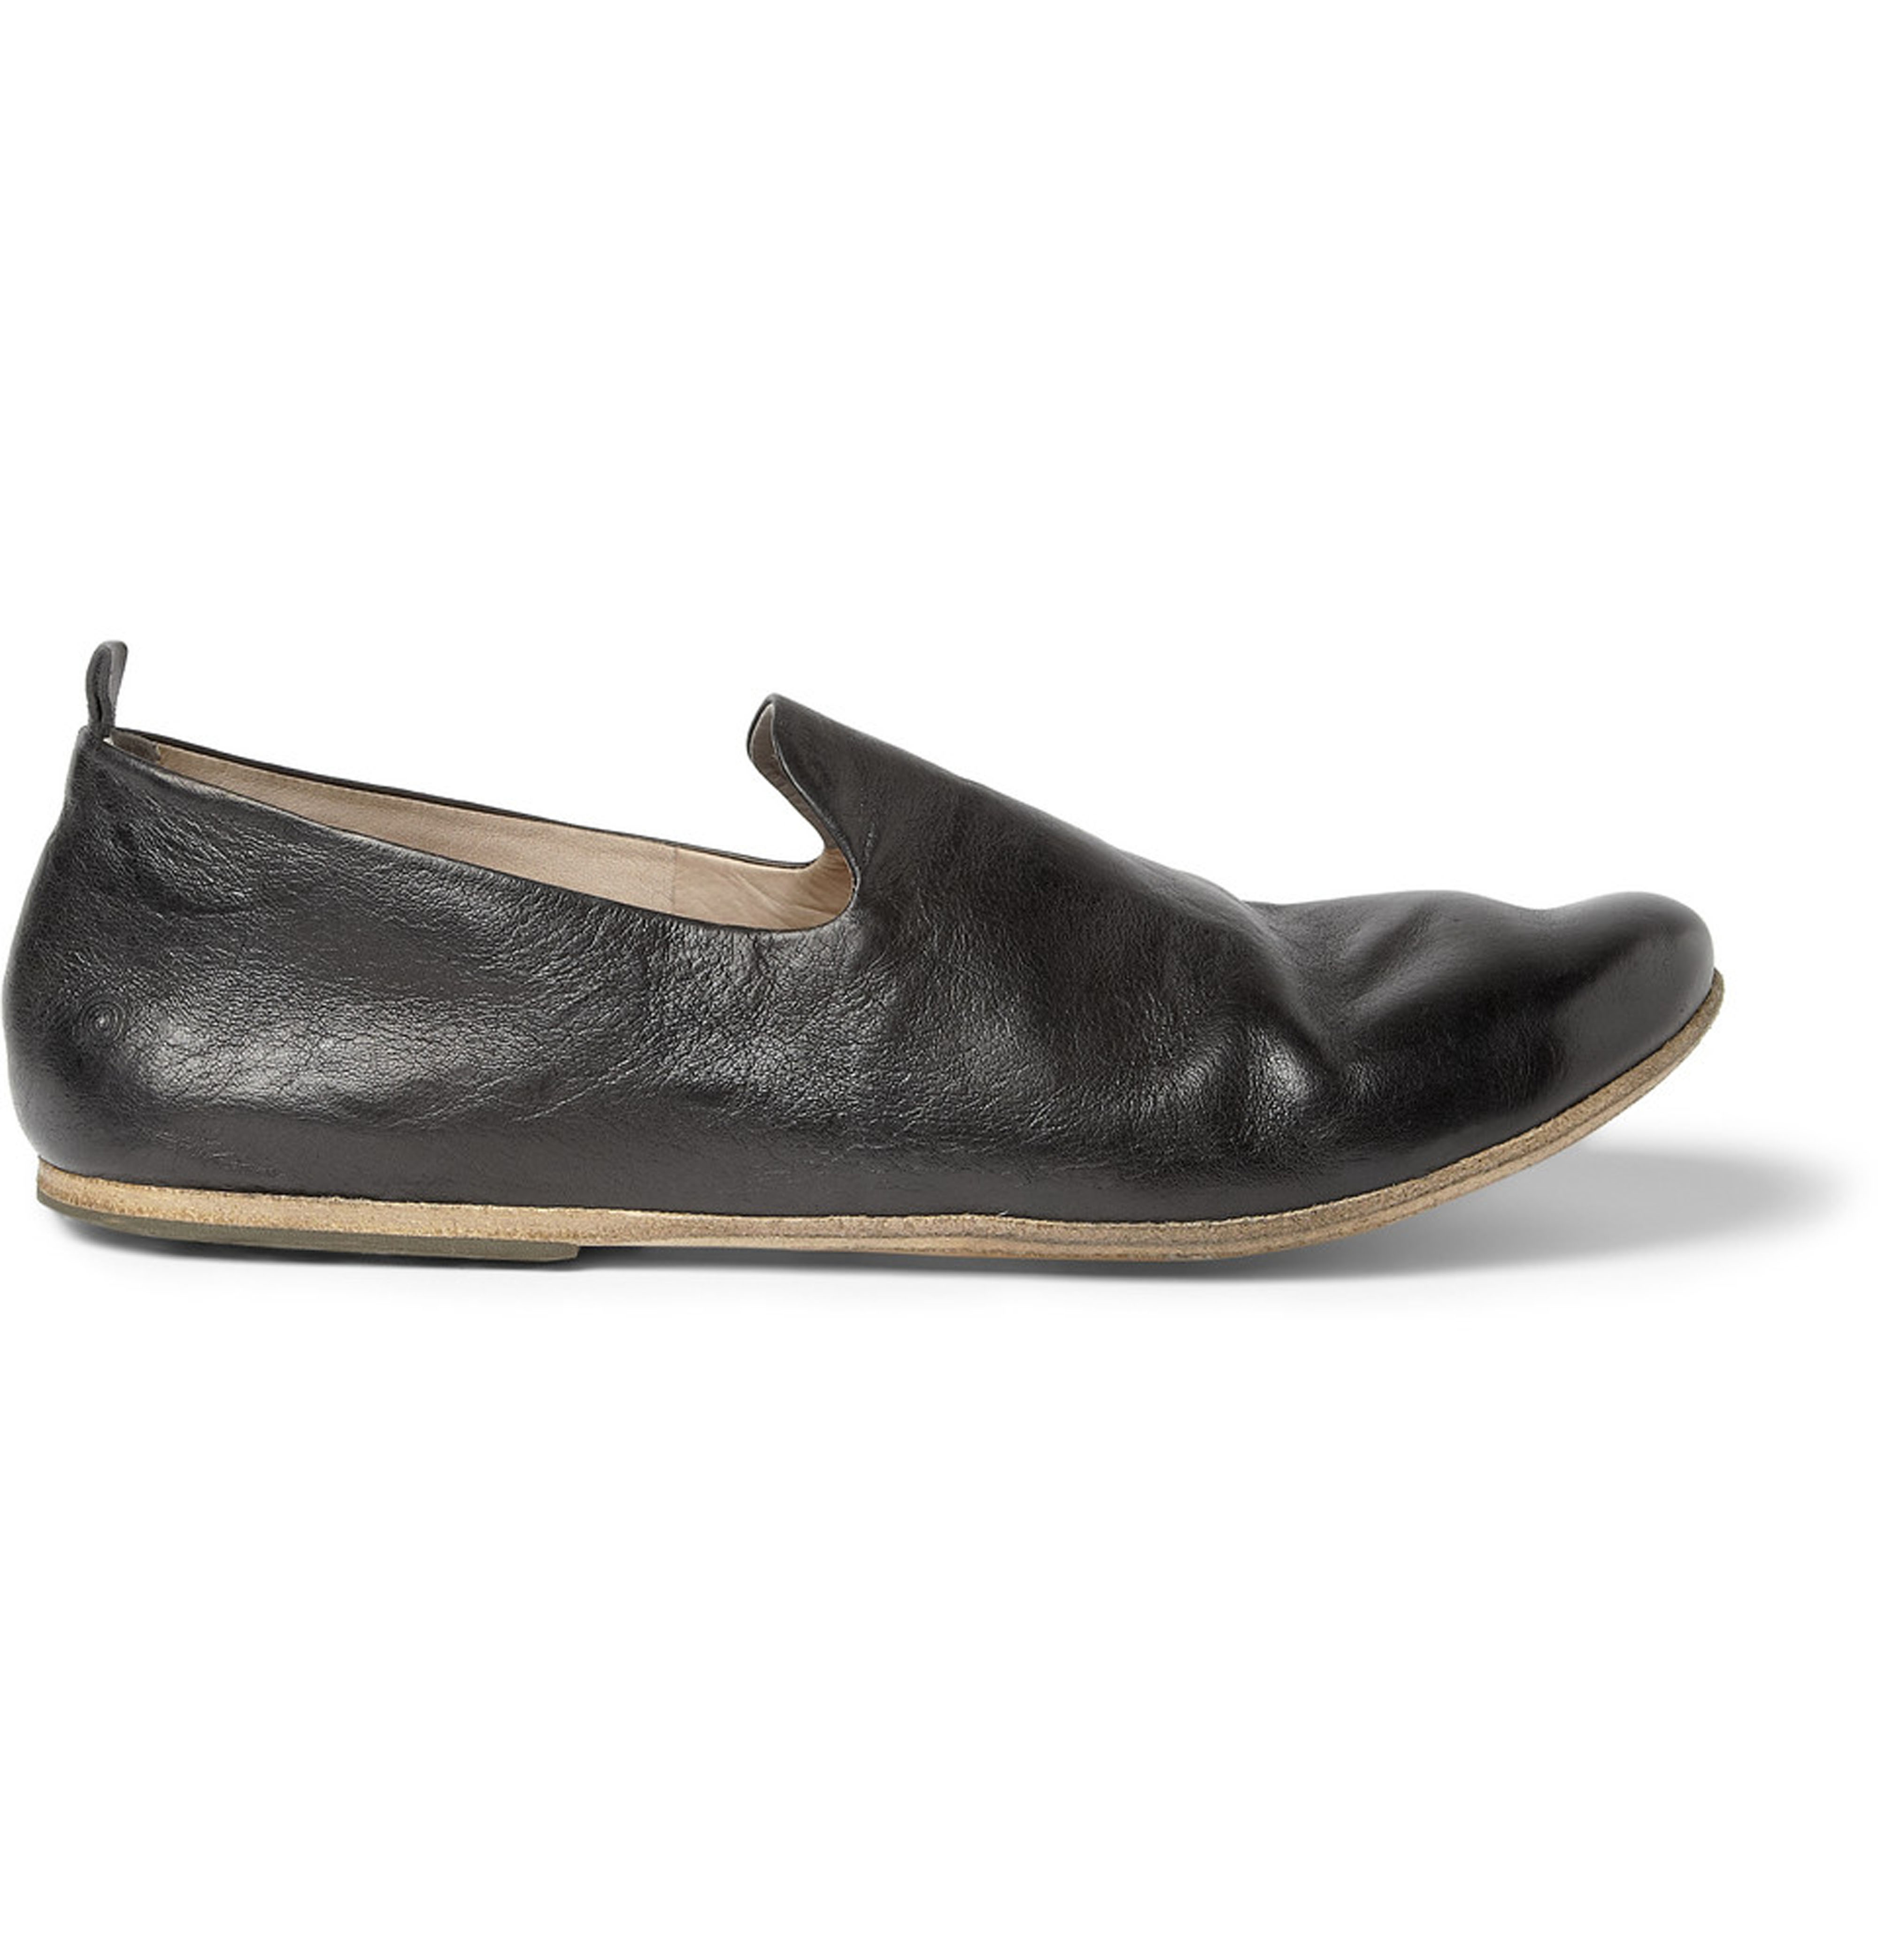 337078 - Marsell Shoes